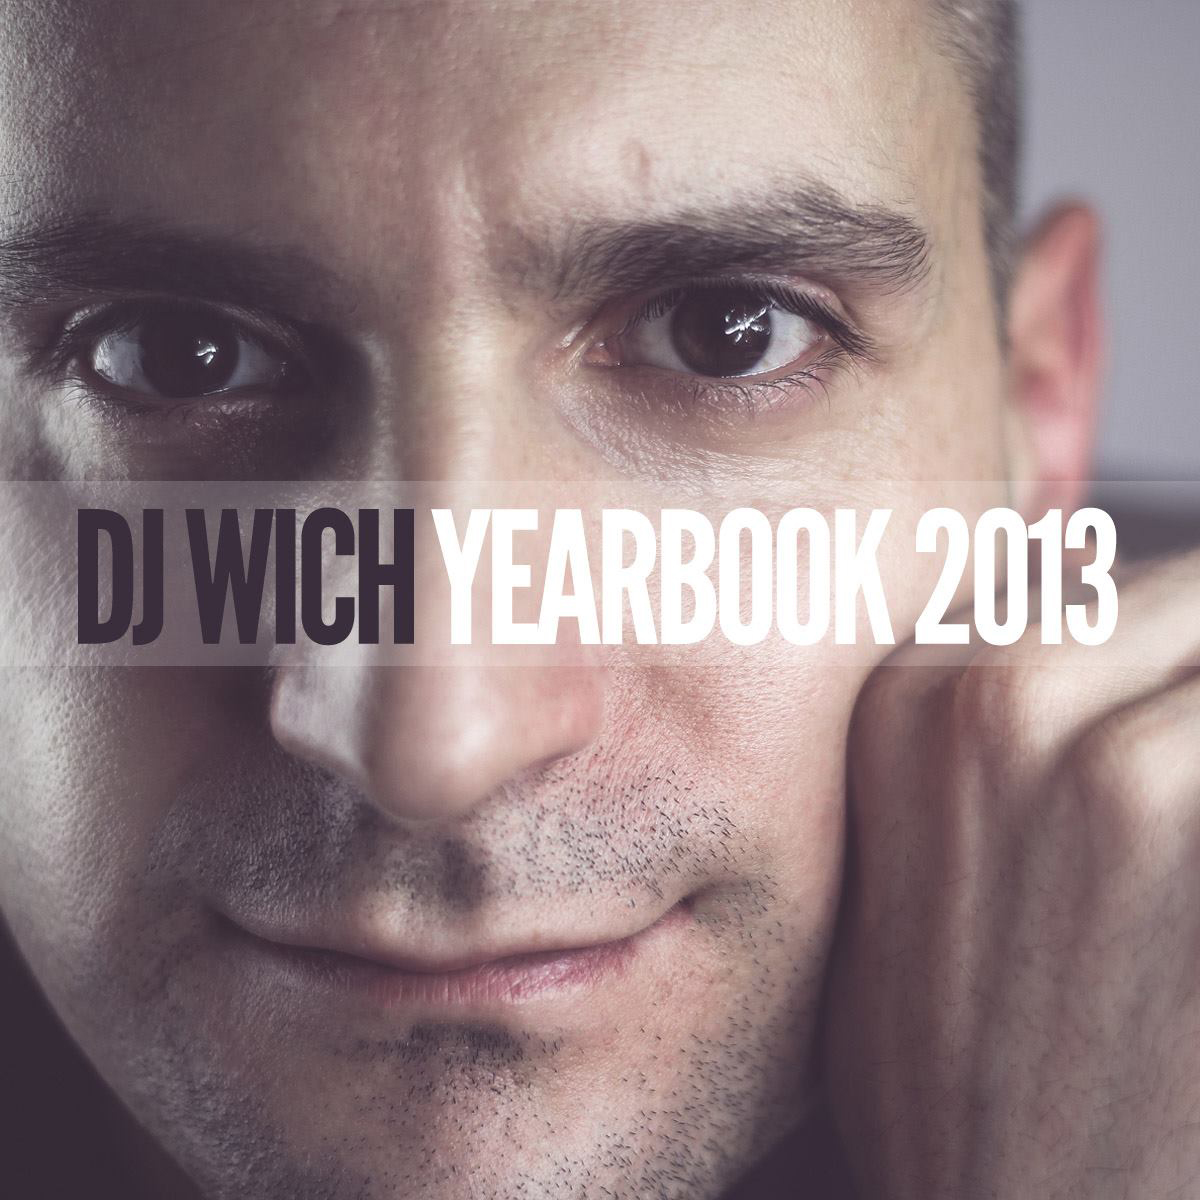 DJ Wich - Yearbook 2013 mixtape